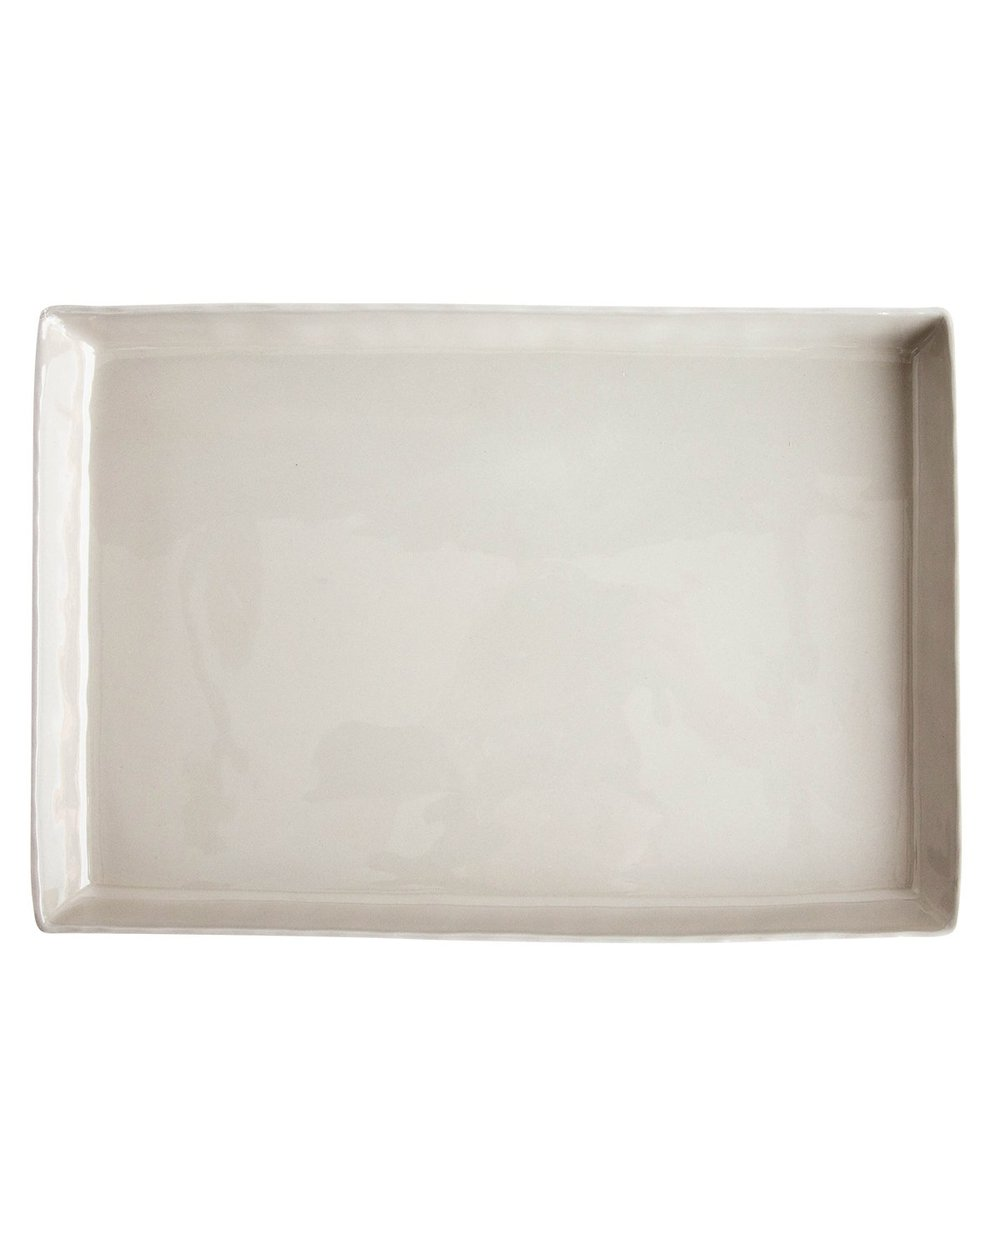 Ceramic_Trays_8.jpg